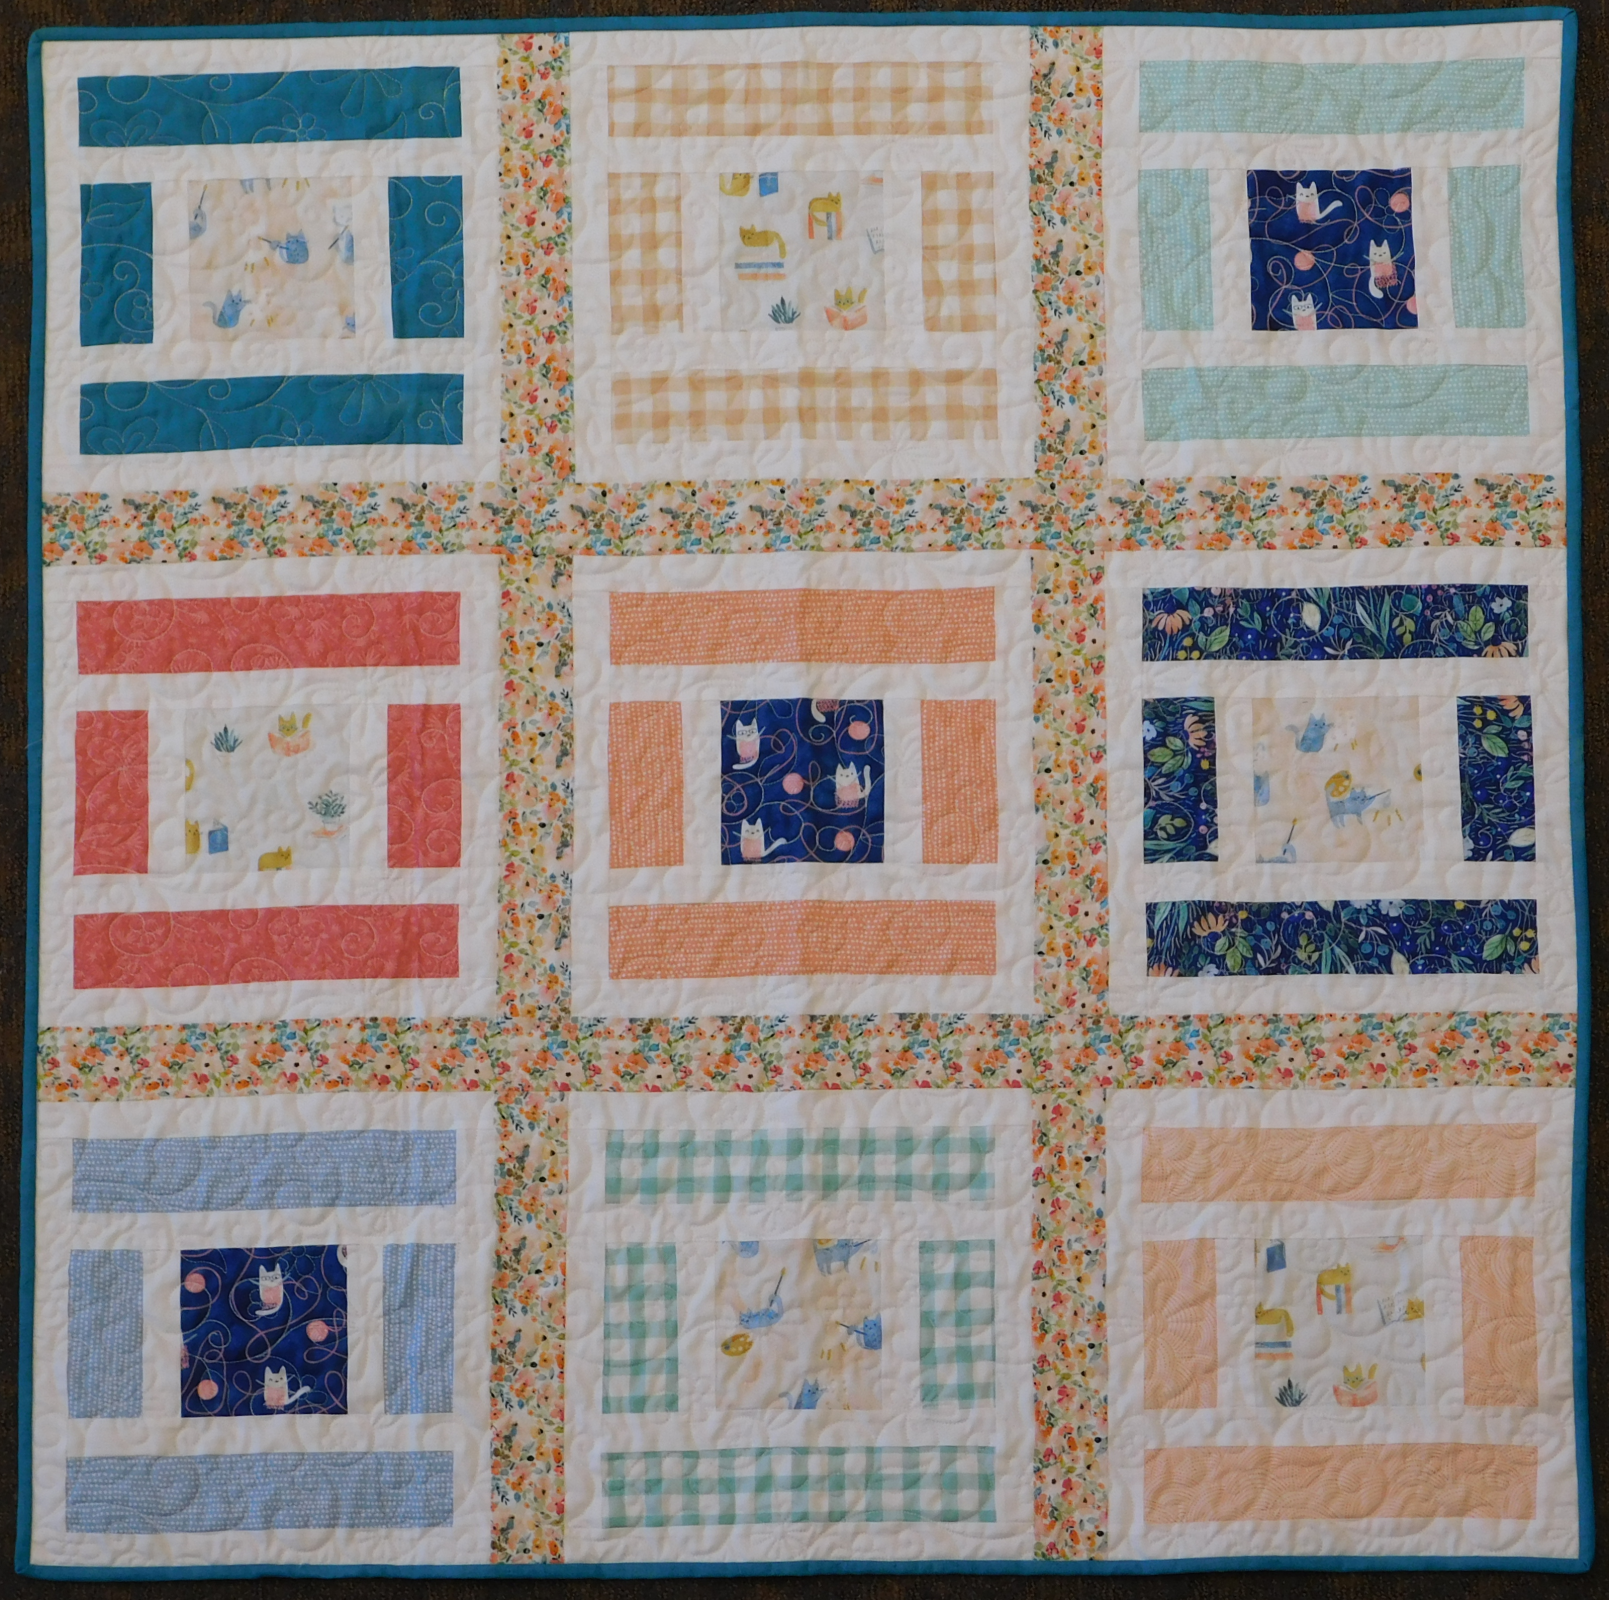 Lillian and Oliver quilt Kit 42 x 42